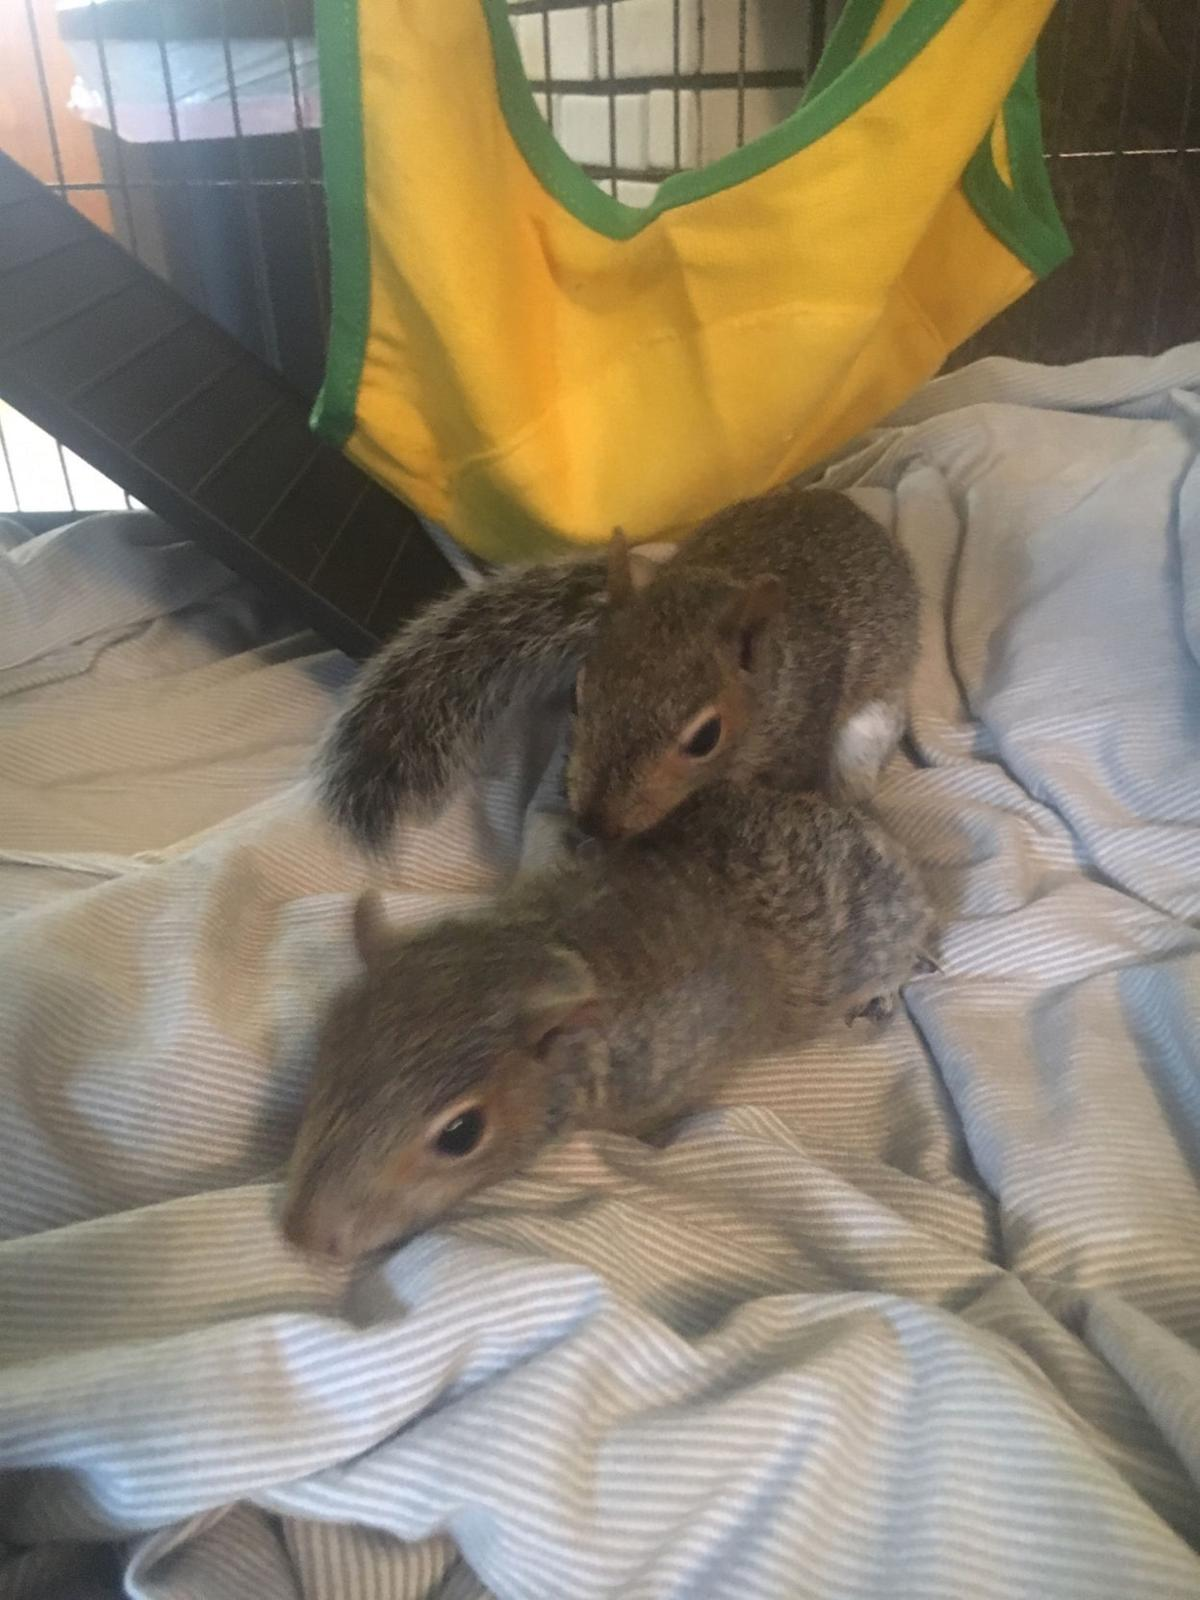 Coco and Peanut; a tail, er, tale of two squirrels